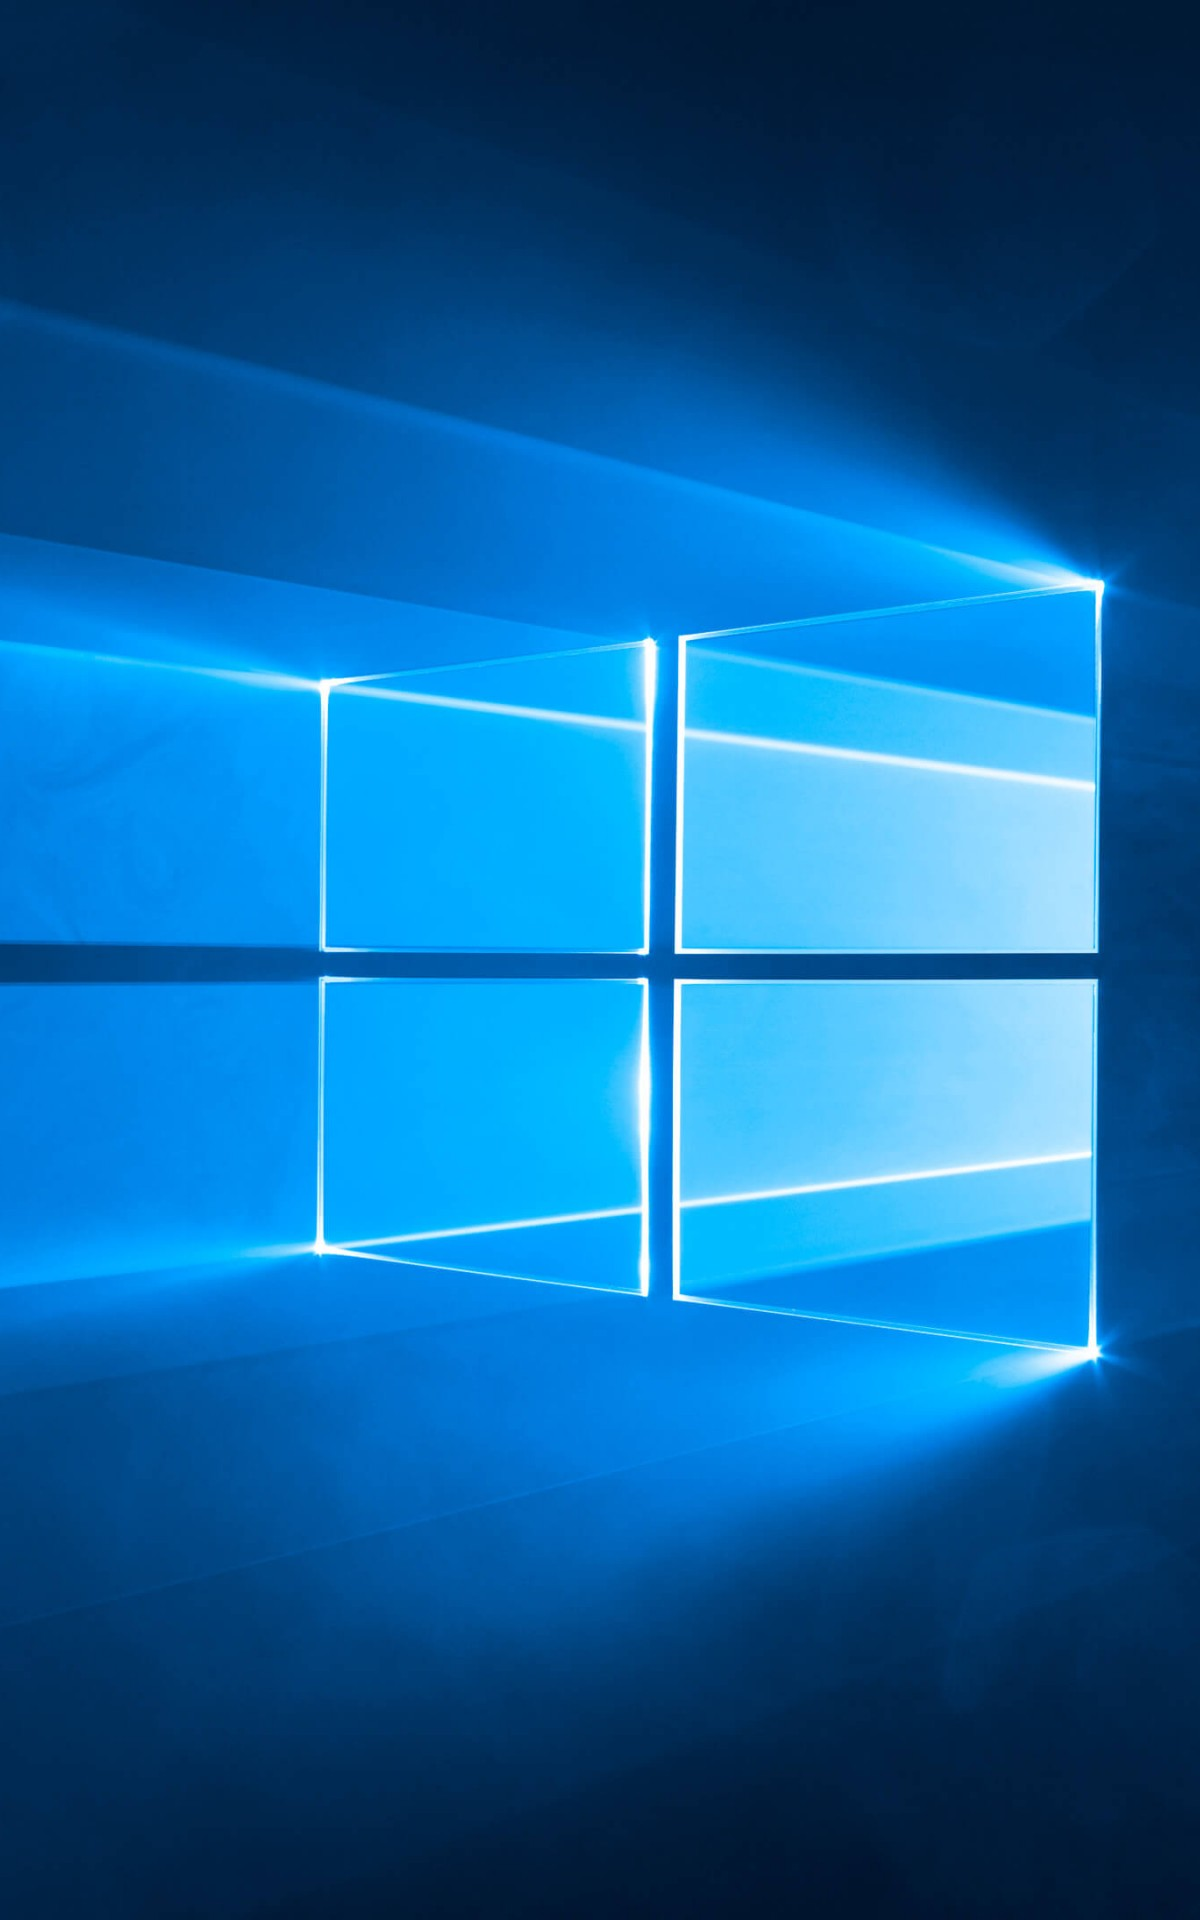 Windows 10 wallpapers official final wallpapersafari for Windows official